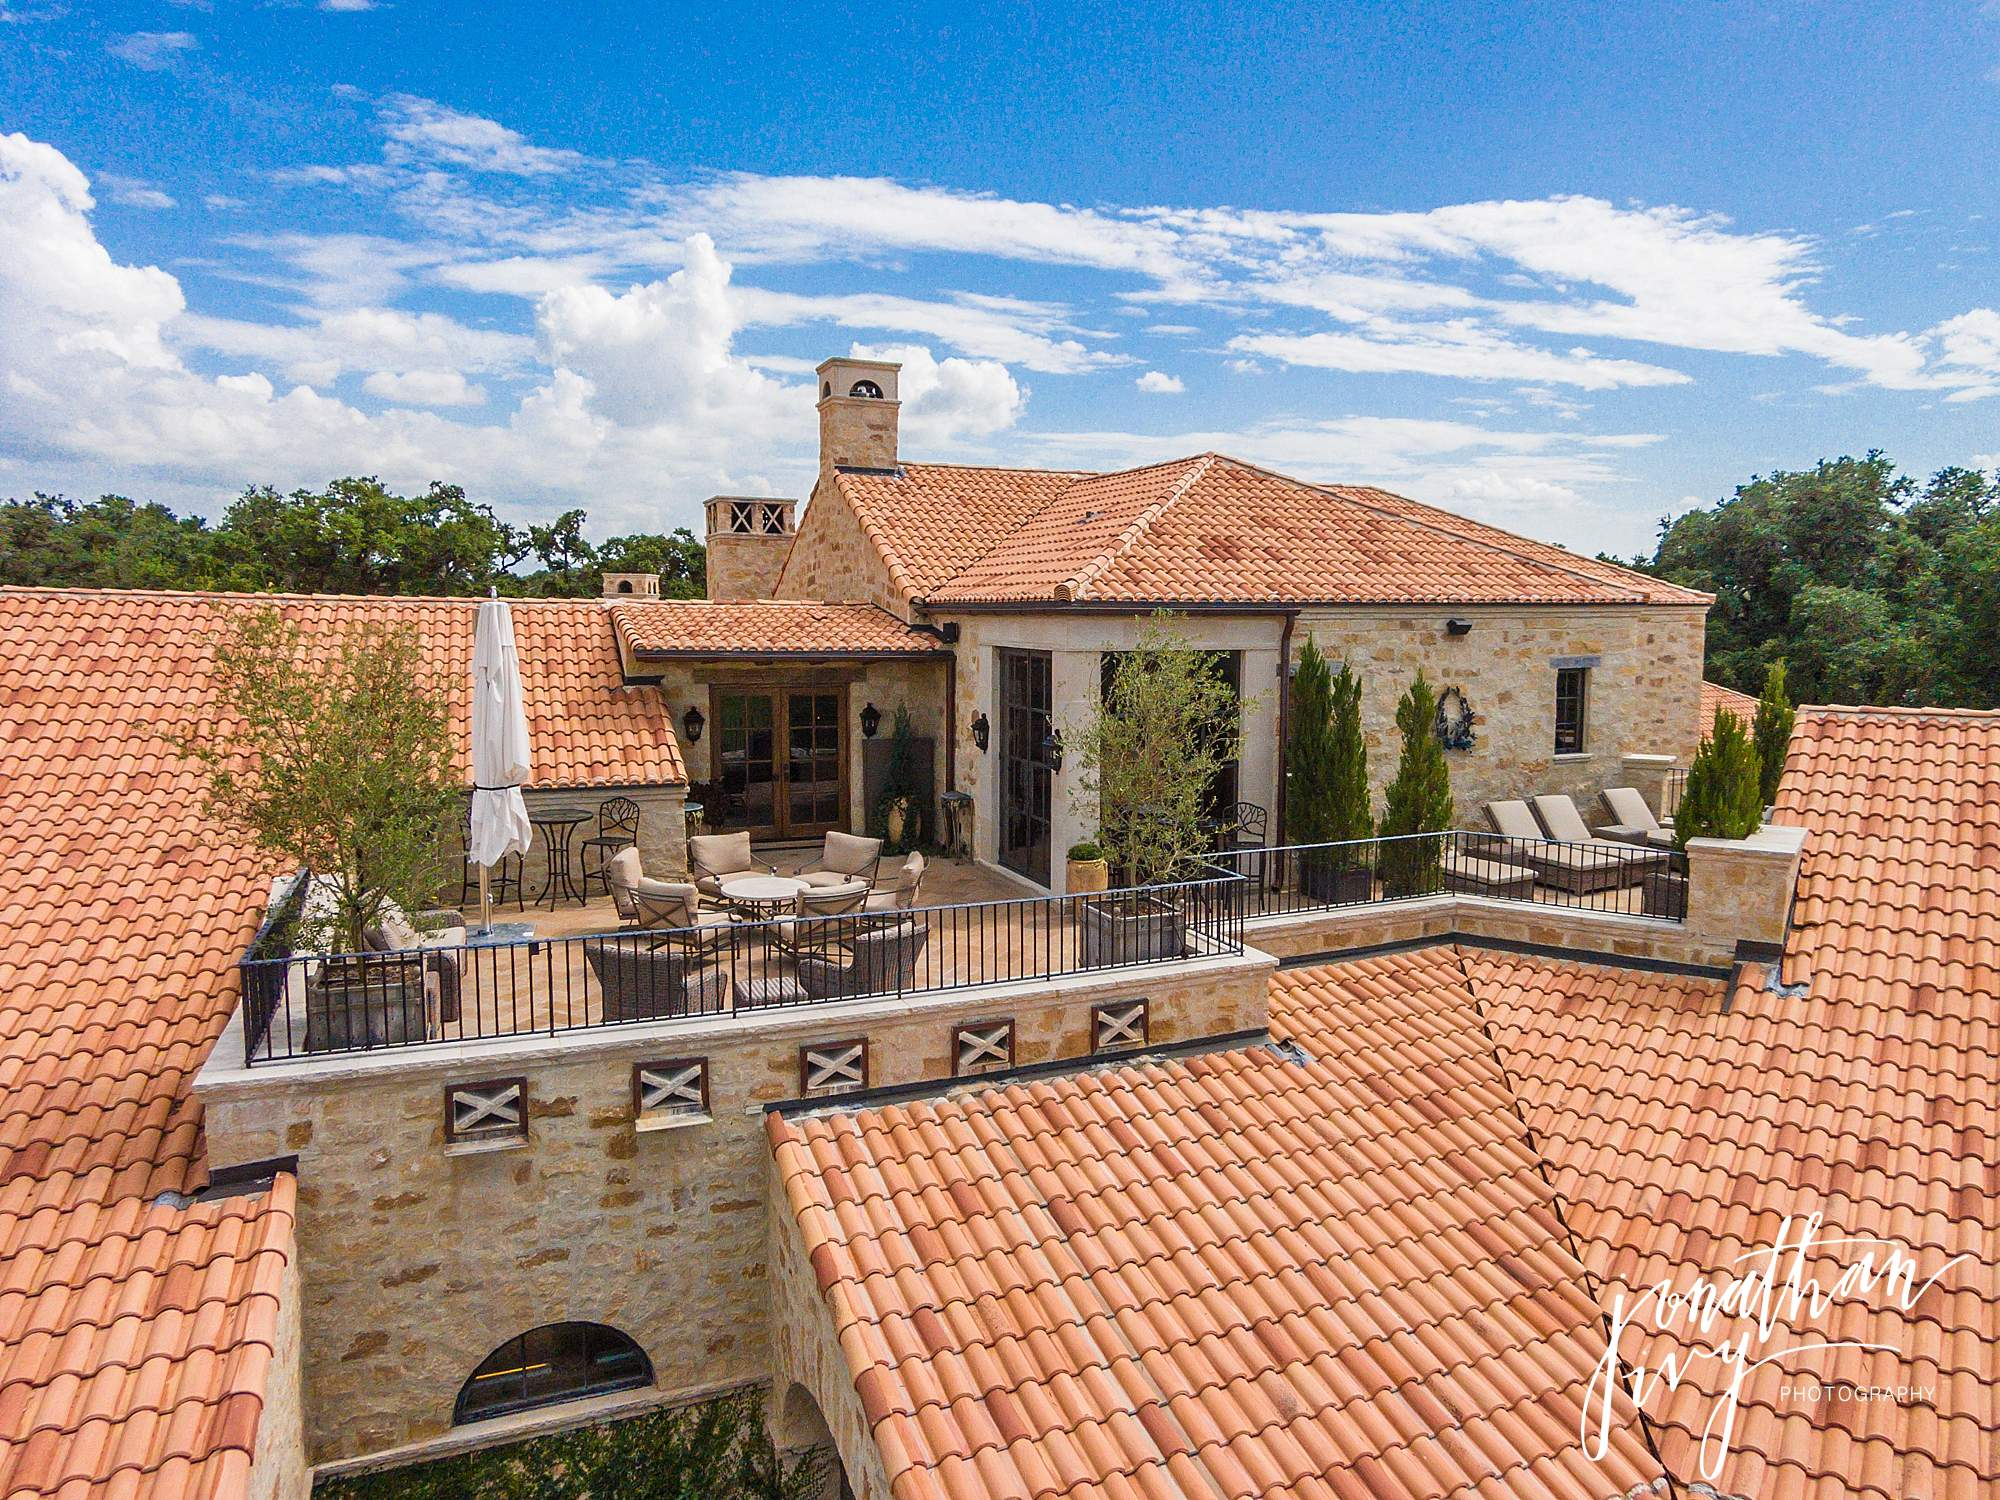 San Antonio Drone Photographer